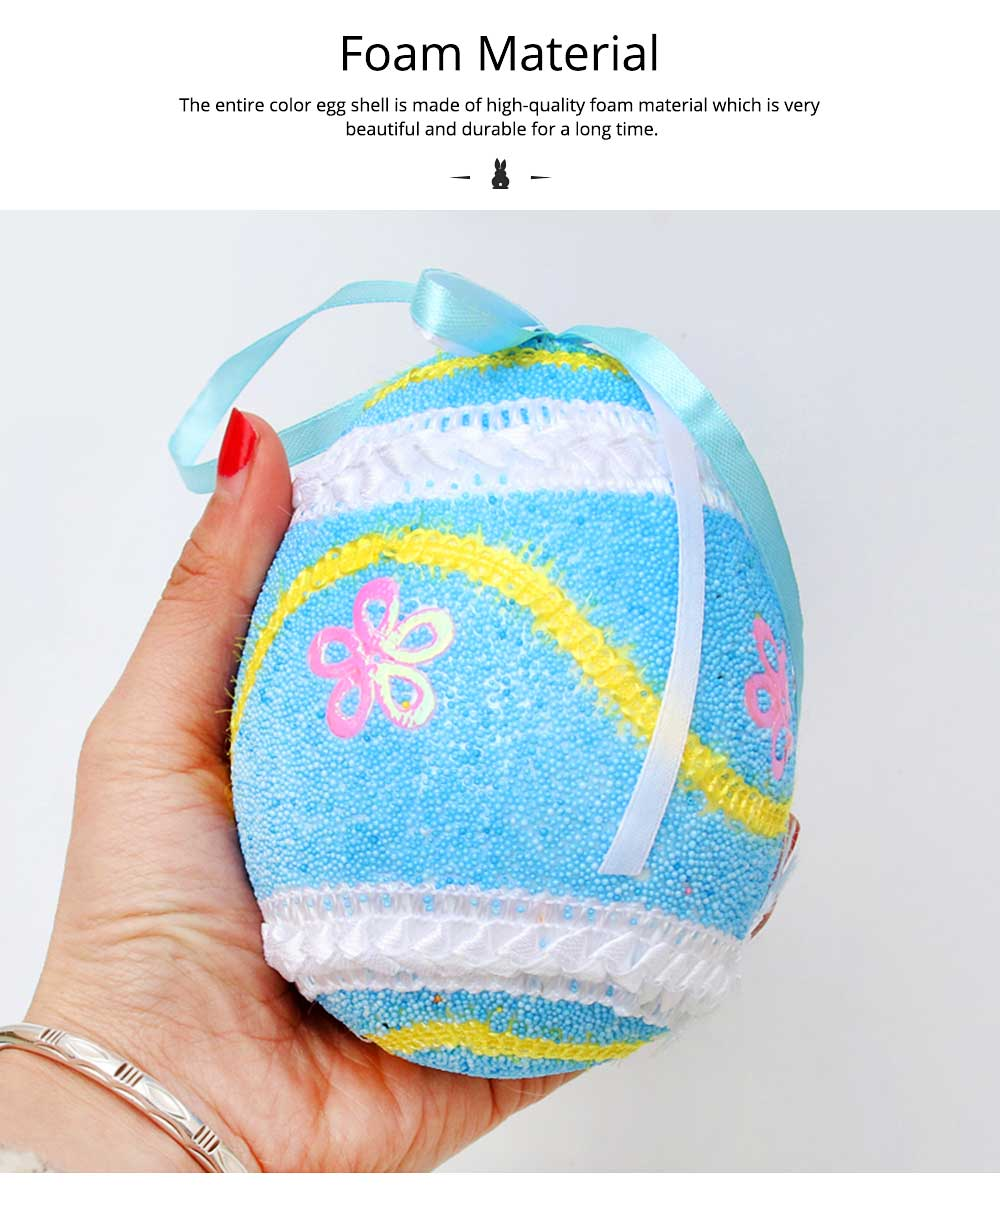 Large Foam Easter Egg Decoration 9cm, Large Size Pendant with Hanging Ribbon Easter Ornaments 4